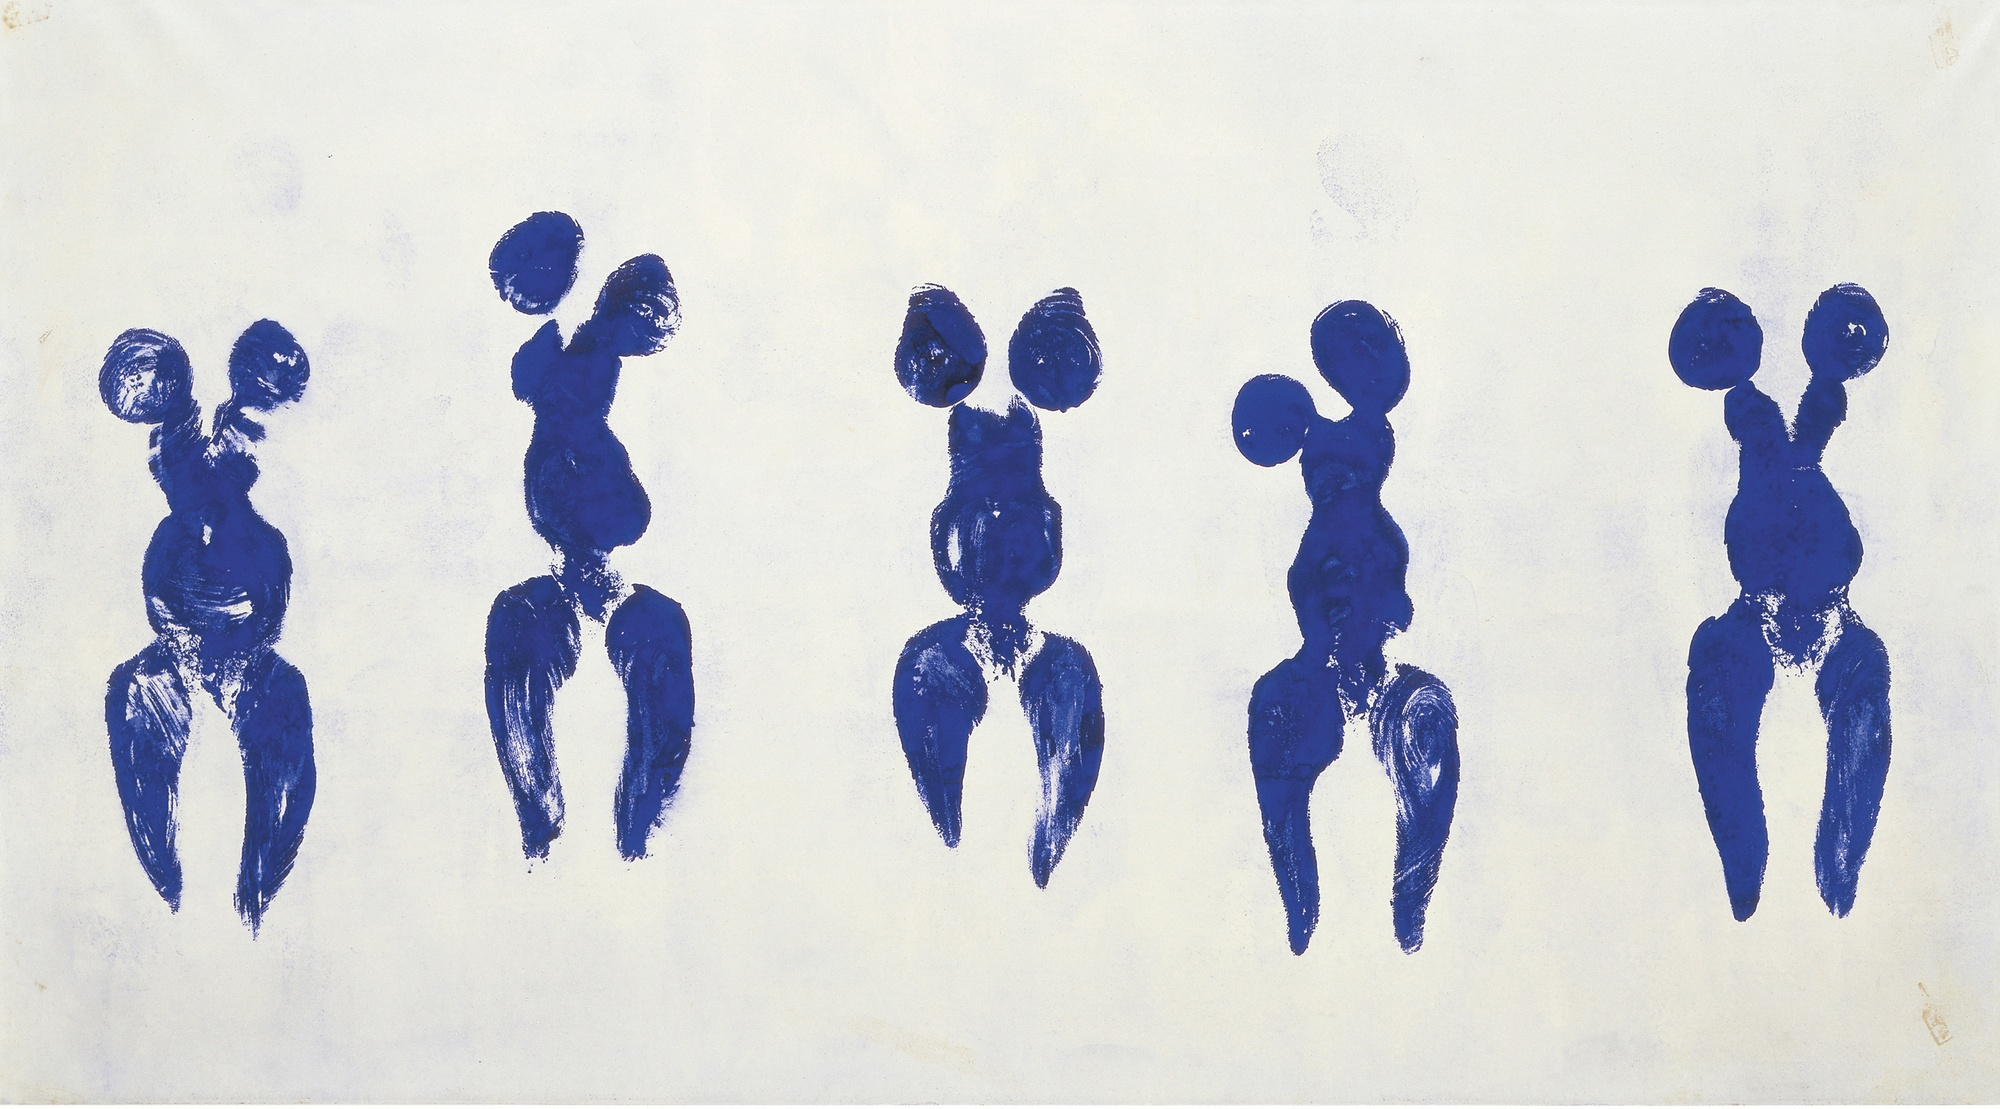 Yves Klein, Anthropométrie de l'époque bleue (ANT 82), 1960